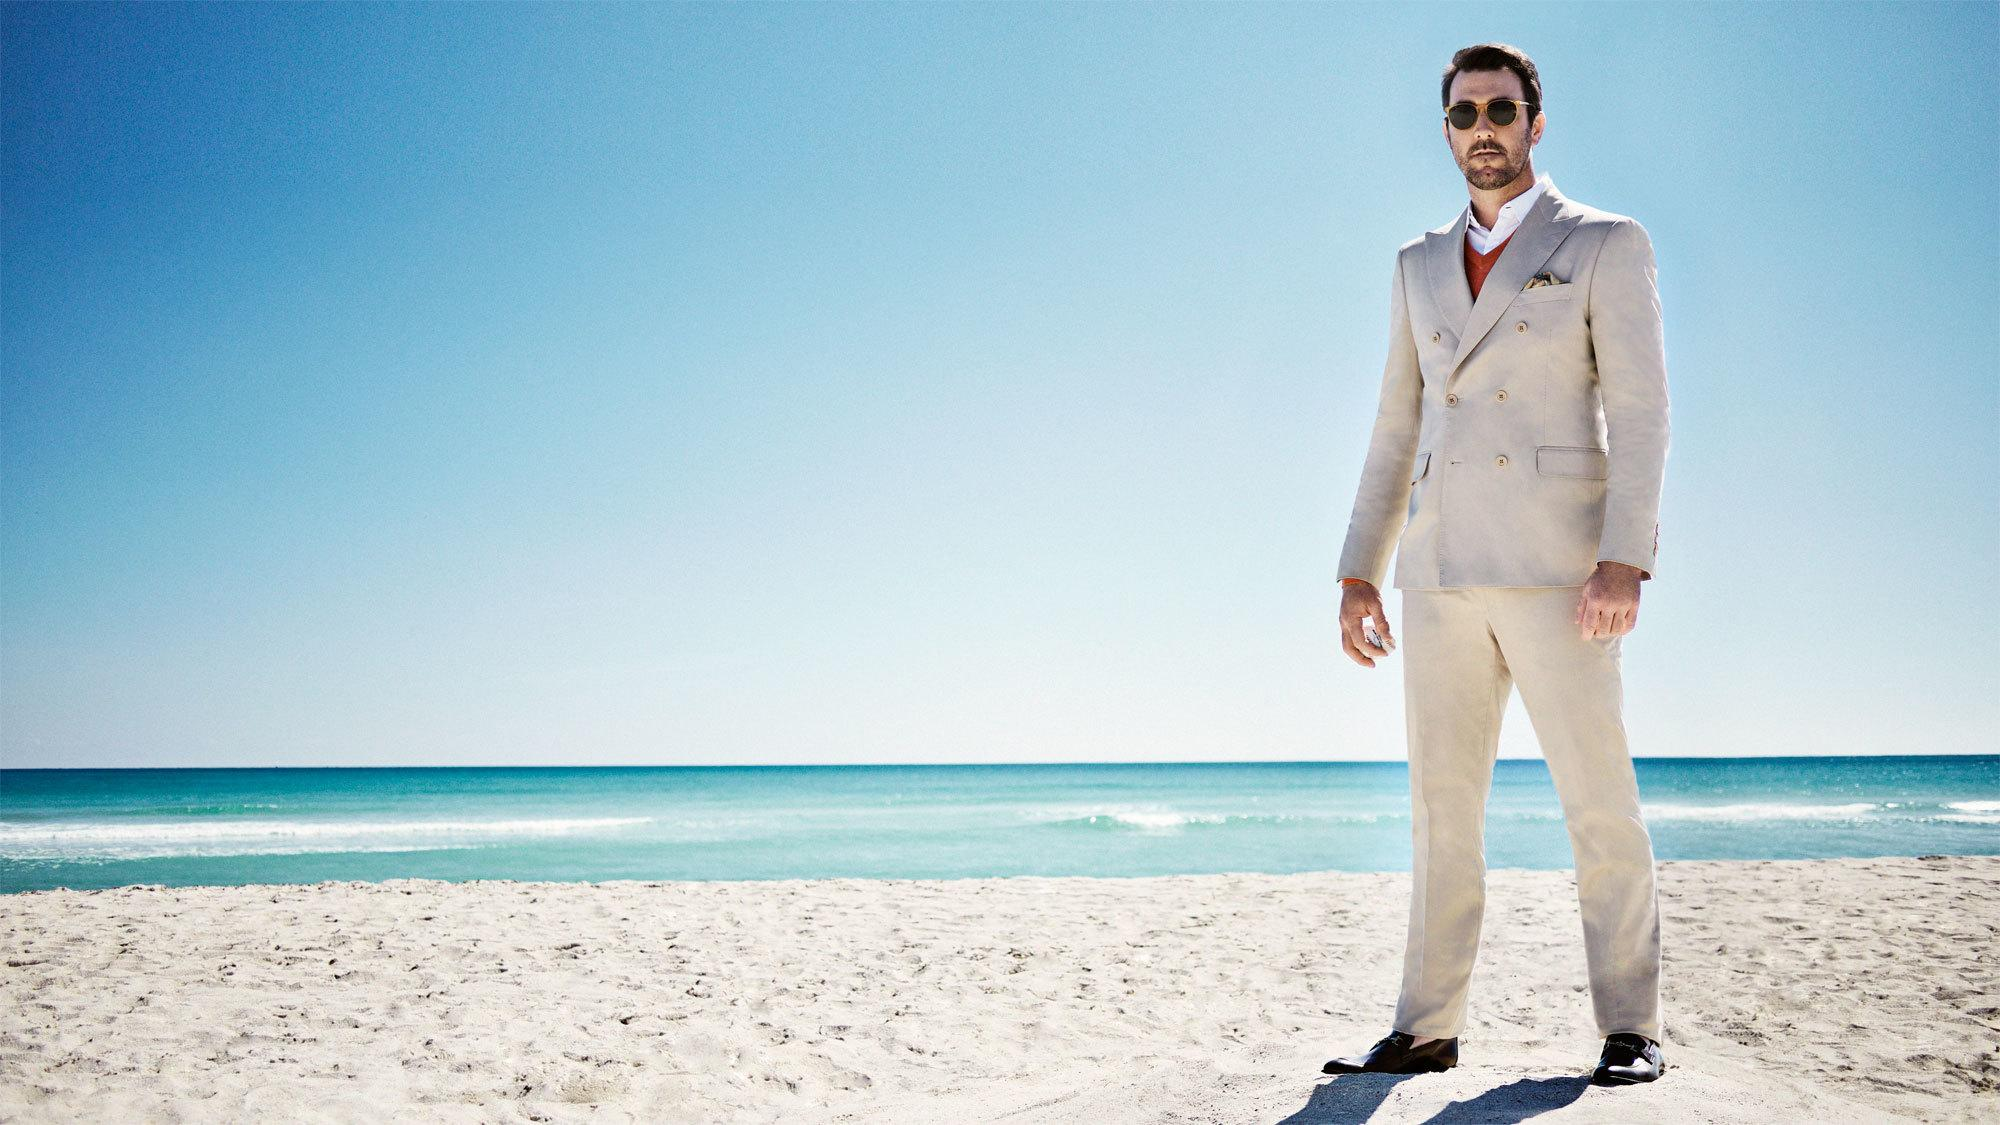 Justin Verlander: Fashion, Life And Baseball